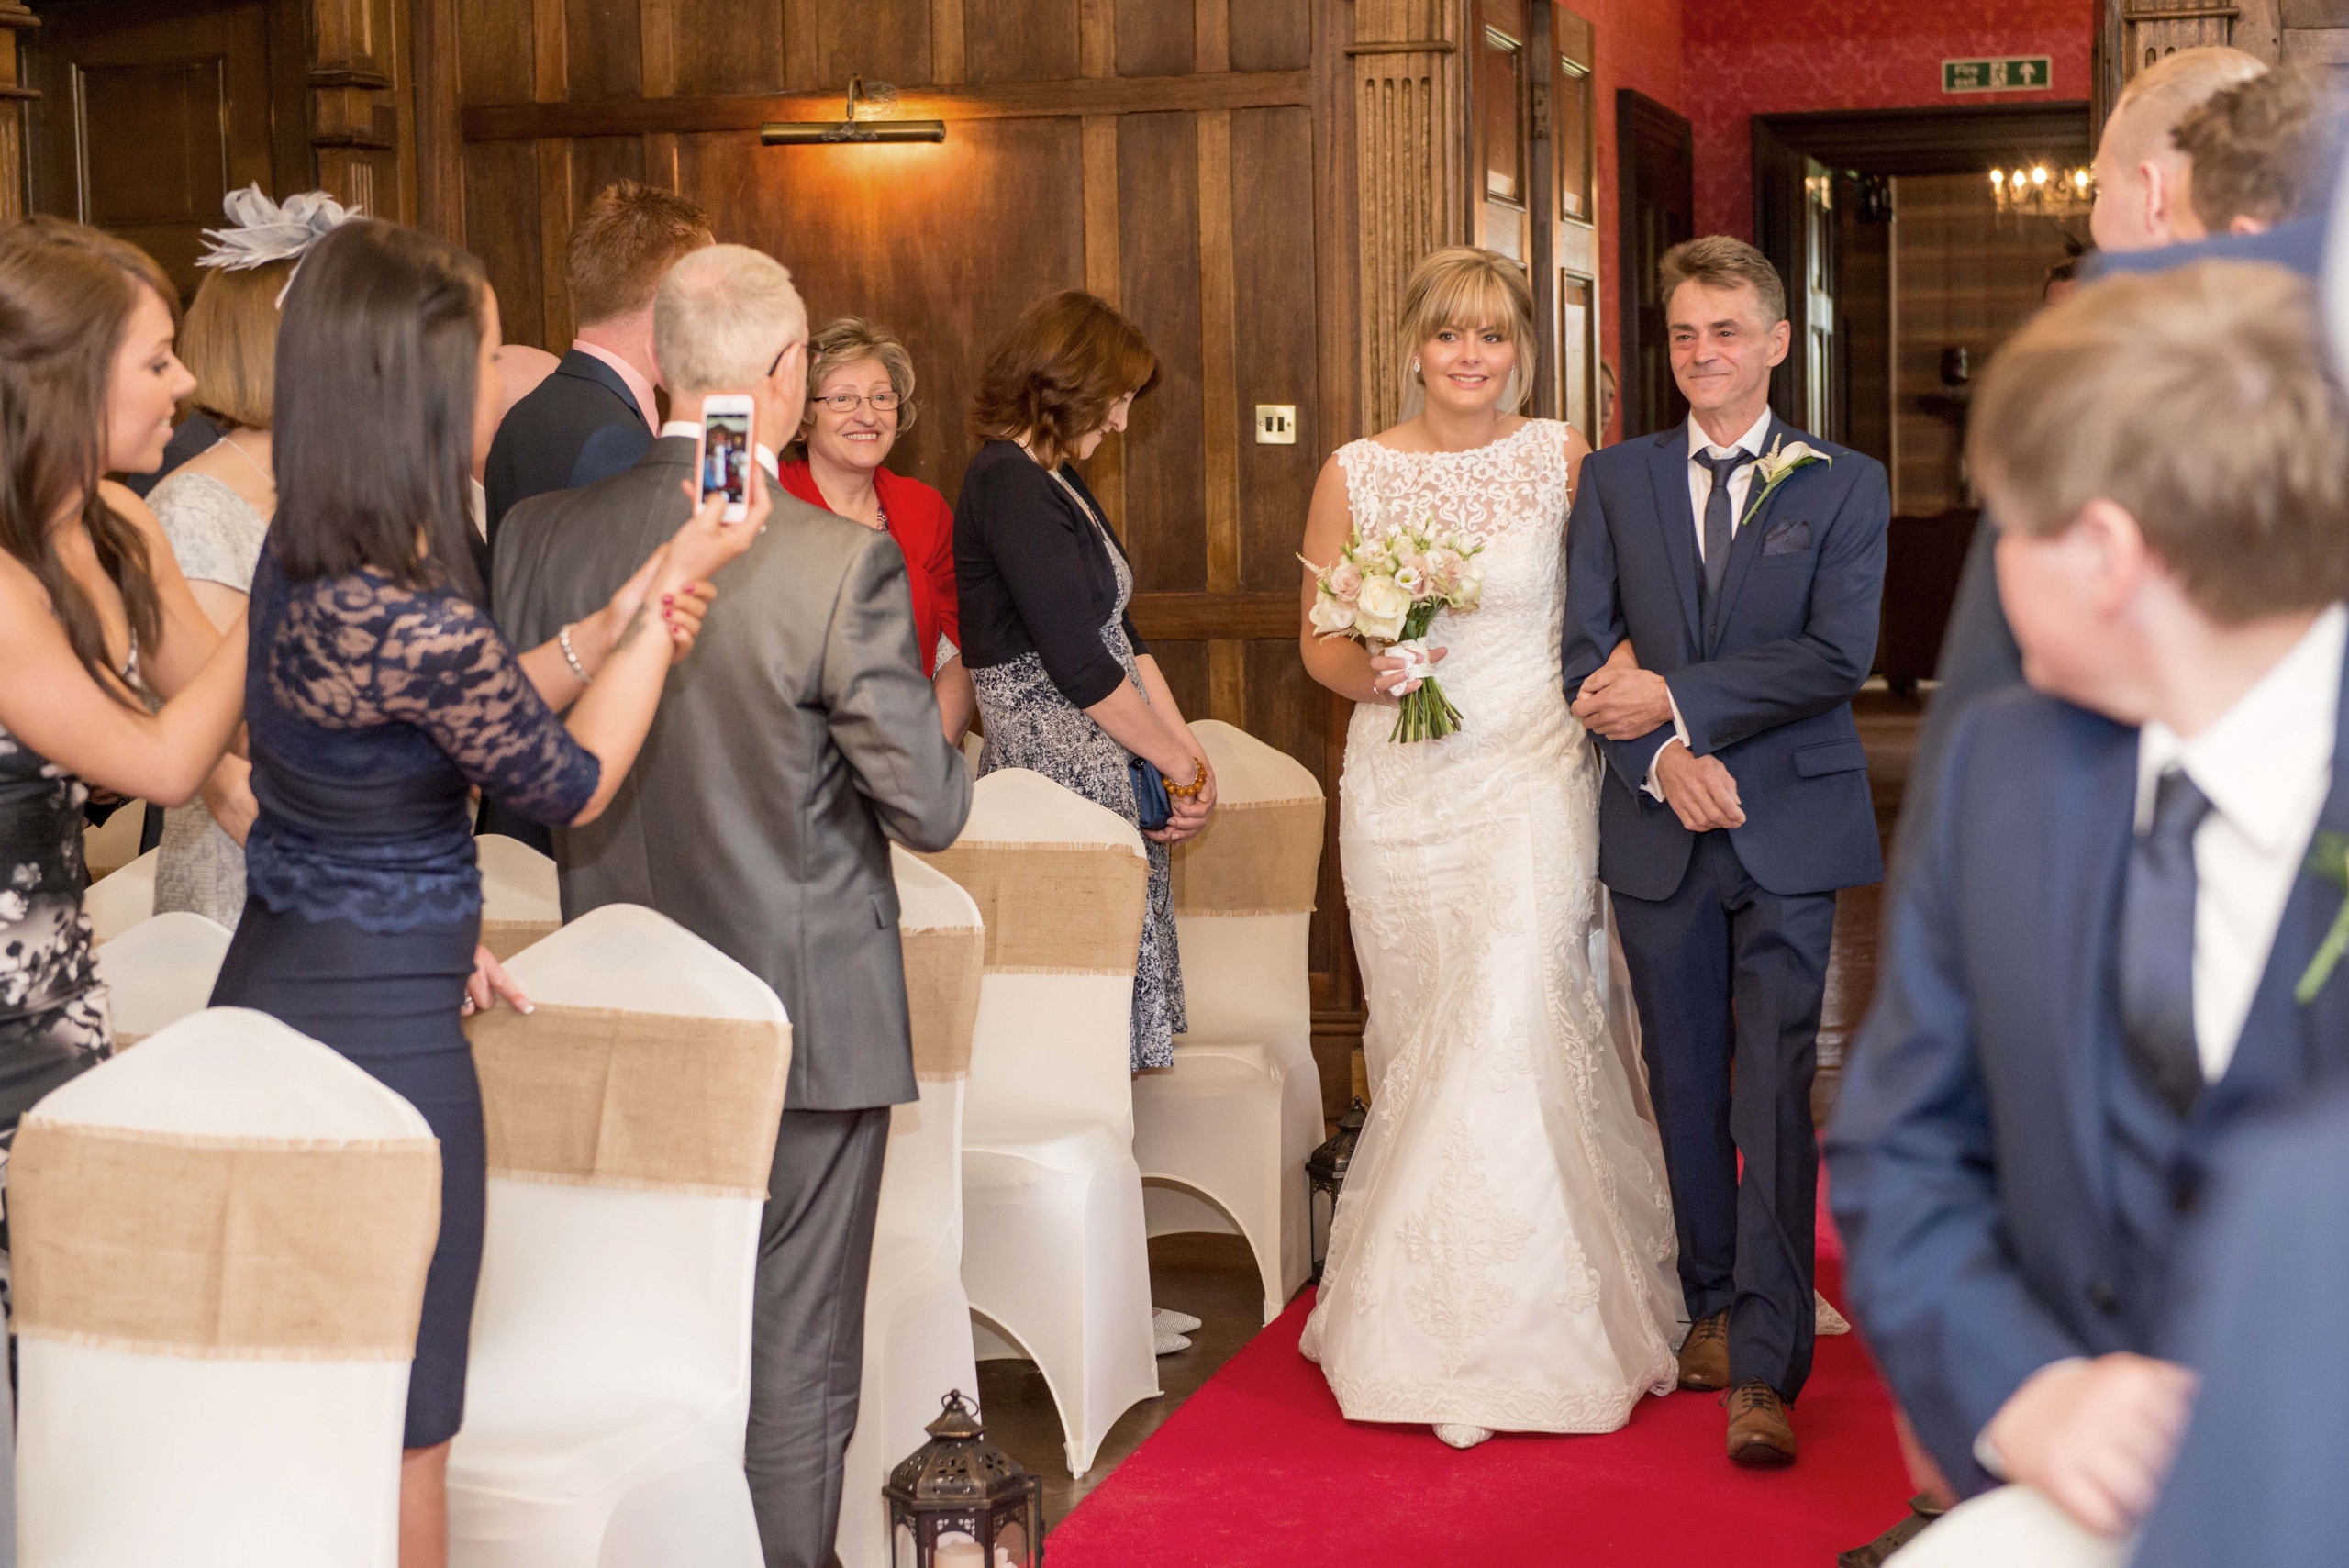 Photograph of bride walking down aisle on wedding day at Ellingham Hall wedding venue in Northumberland